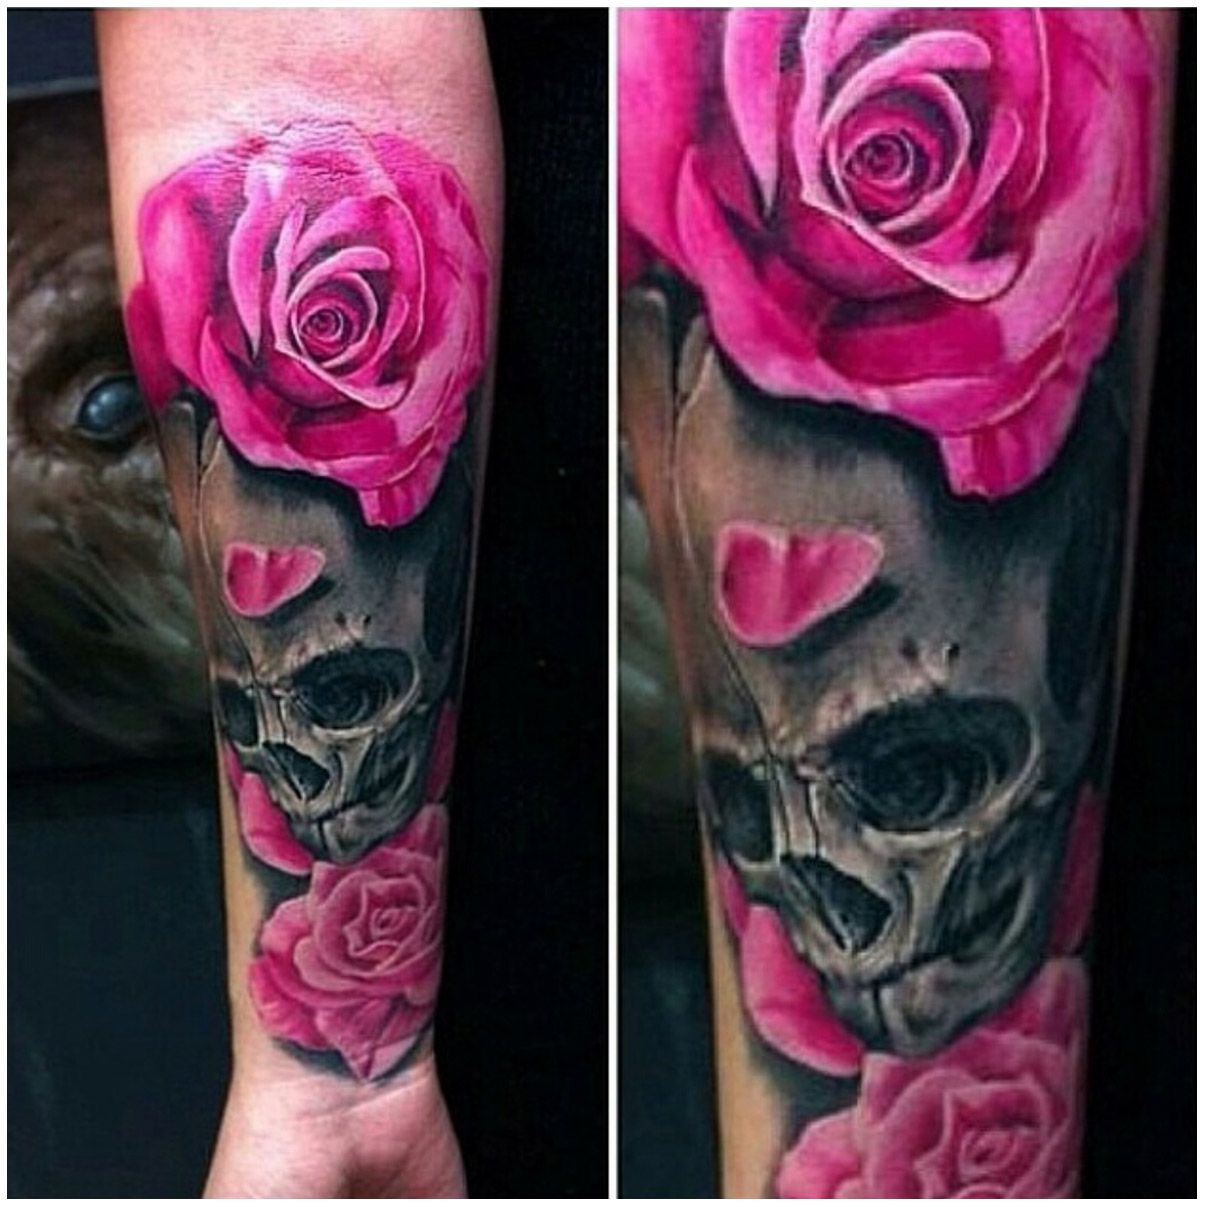 Tats image by Meghan Moravitz Rose tattoo sleeve